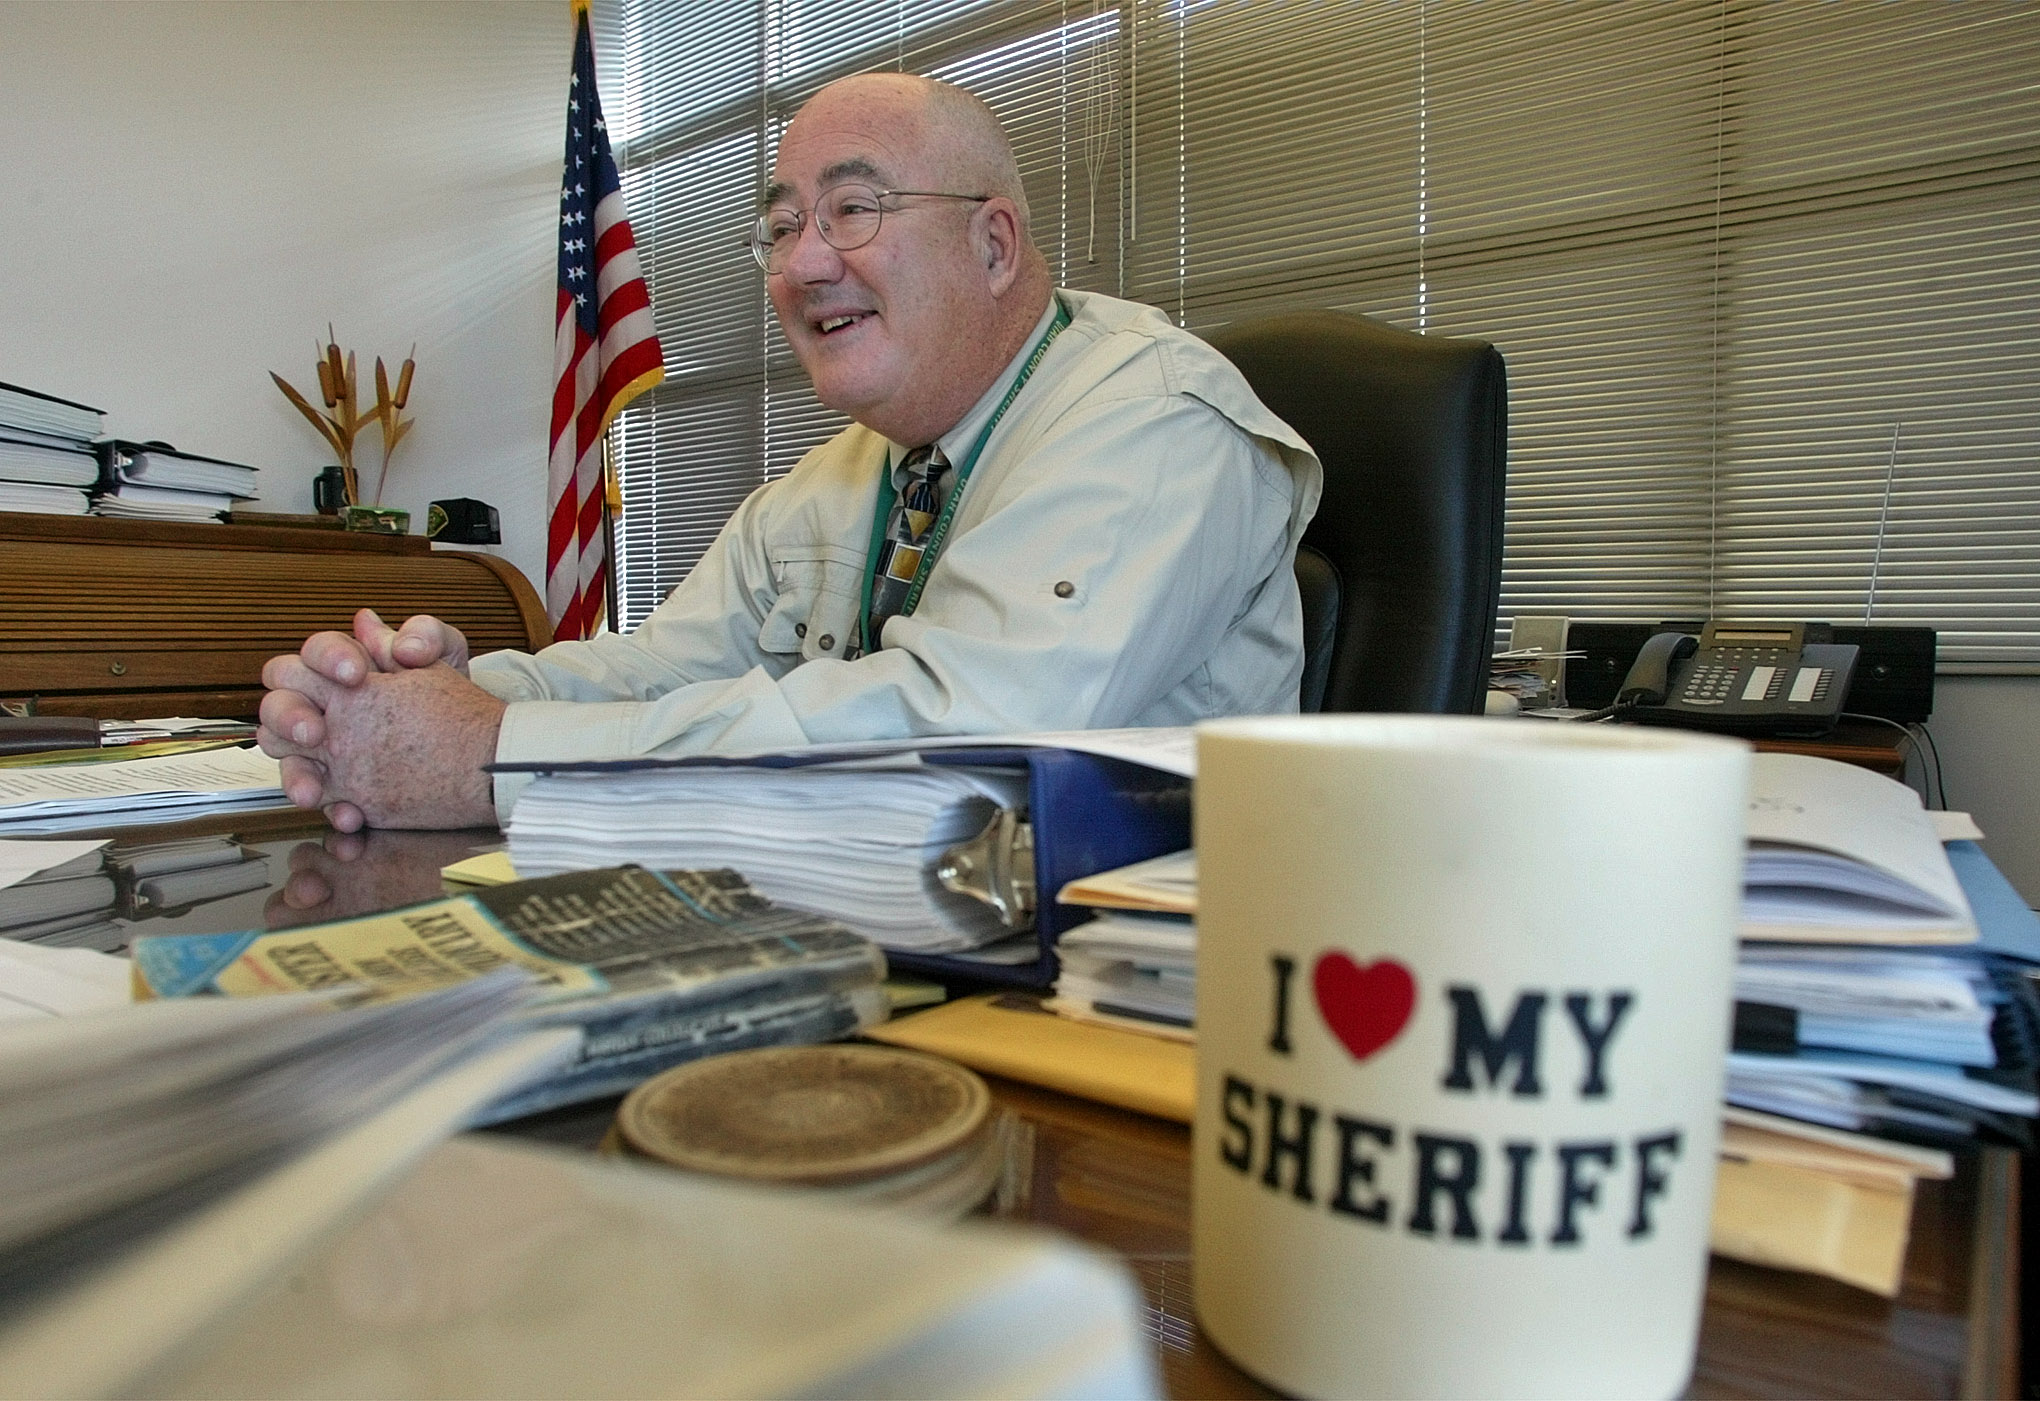 Utah County Sheriff Dave Bateman in his office talks about his years as sheriff and in law inforcement. Sheriff Bateman will be retiring in January. Oct. 24, 2002. PHOTO BY STUART JOHNSON. (Submission date: 10/24/2002)